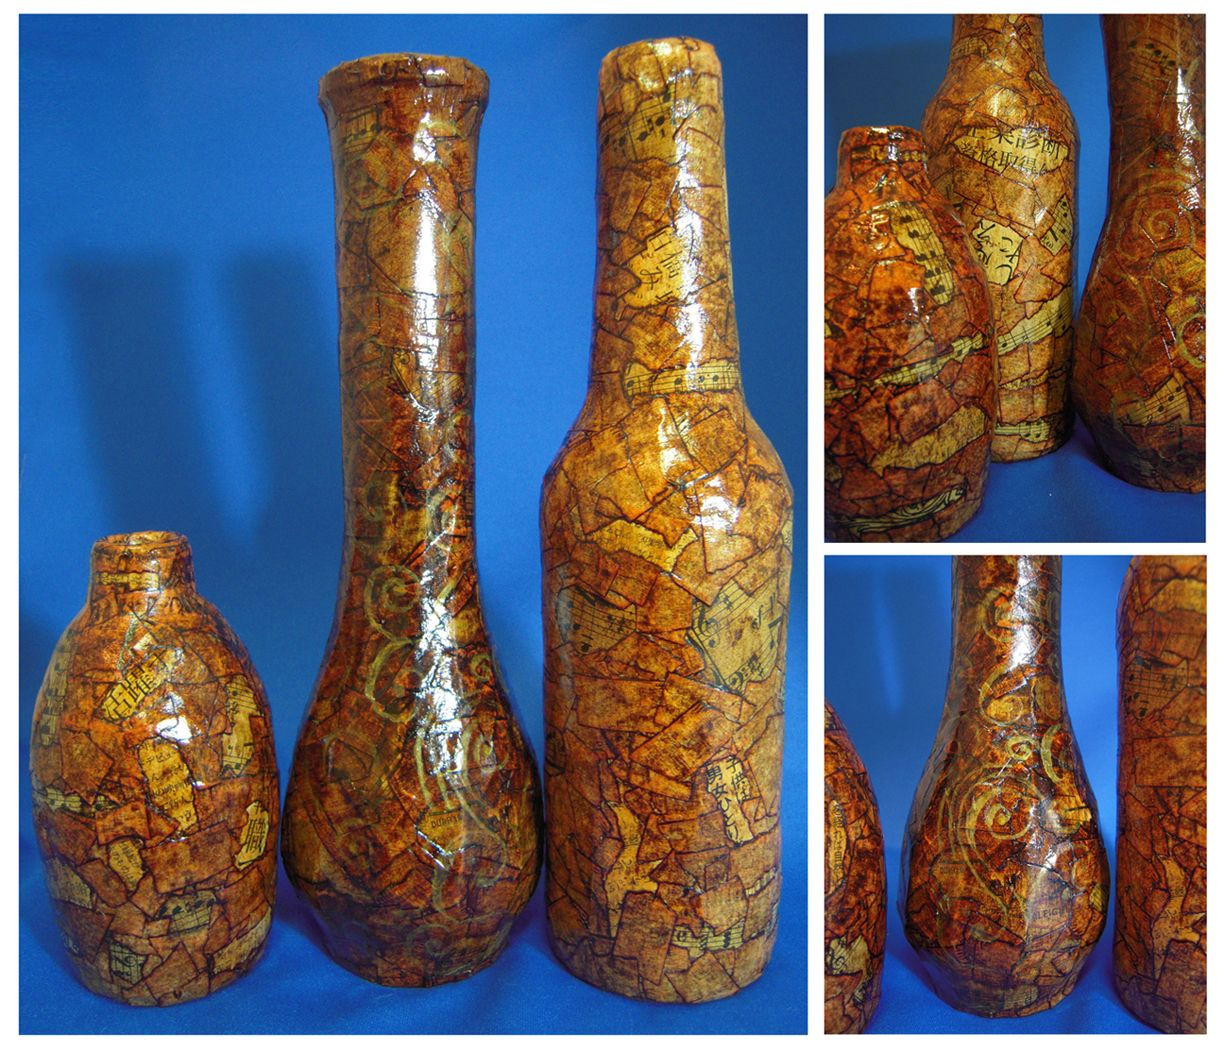 Most Expensive Vase In the World Of Old Wine Bottle Jar Vases Cover with Masking Tape and Stain for Old Wine Bottle Jar Vases Cover with Masking Tape and Stain with Shoe Polish Looks Like Leather when It Dries Did This as A Kid